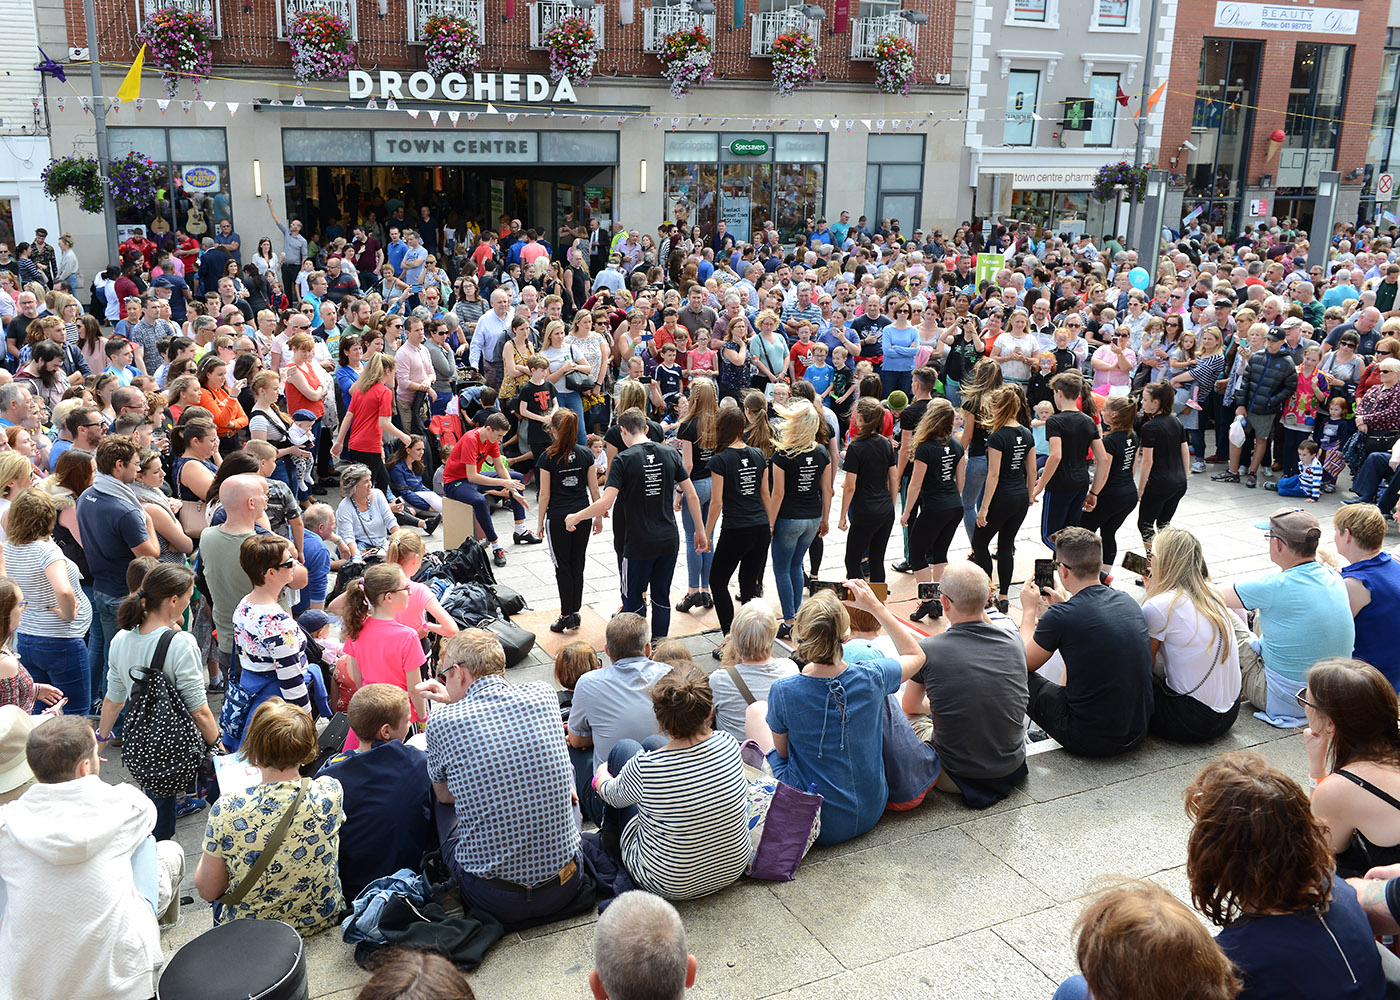 Music and dancing on the streets of Drogheda